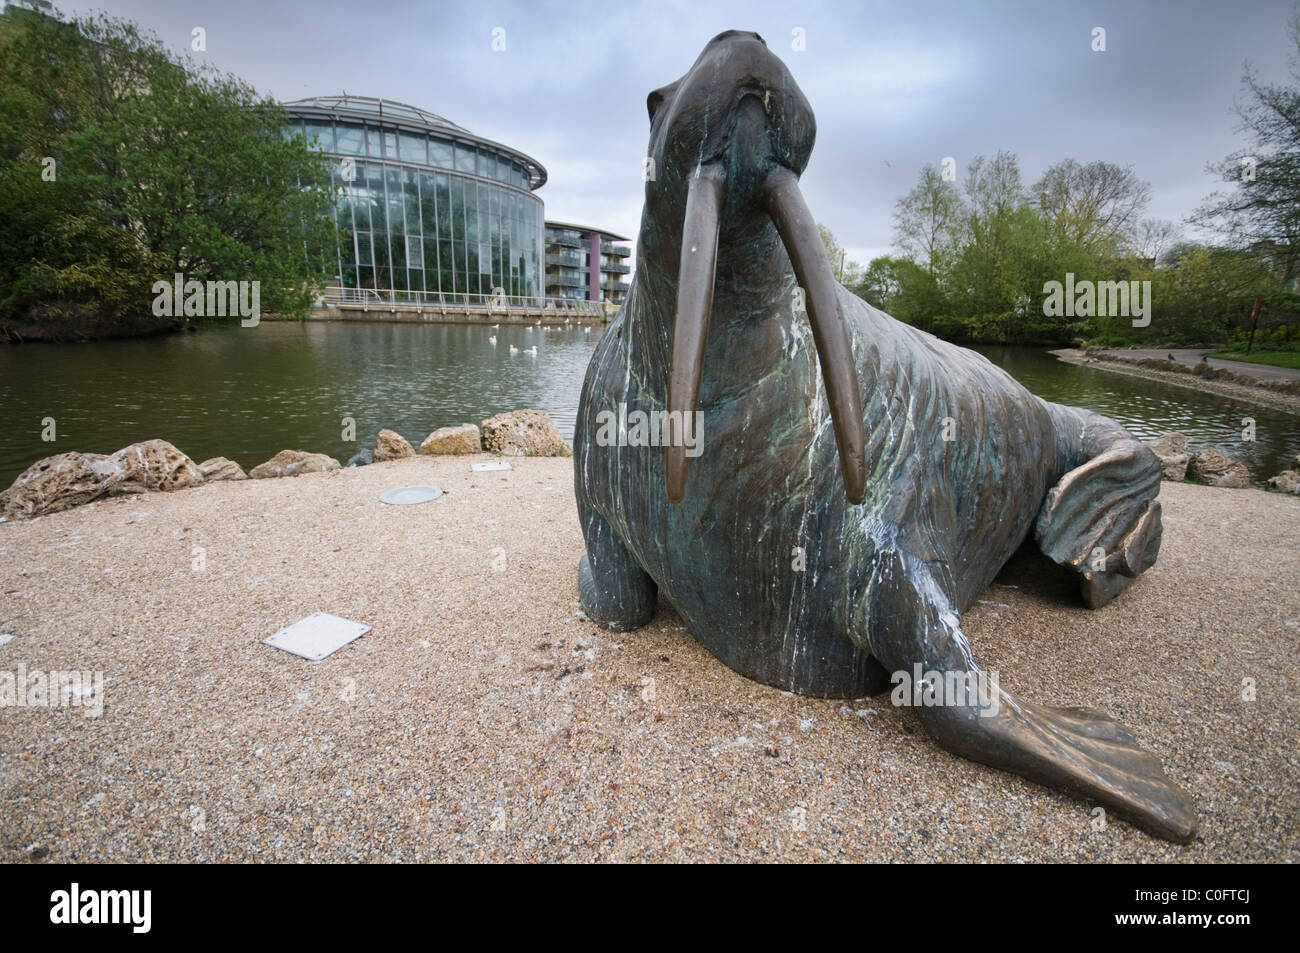 Statue of a walrus in Mowbray Park, an urban park in Sunderland - Stock Image